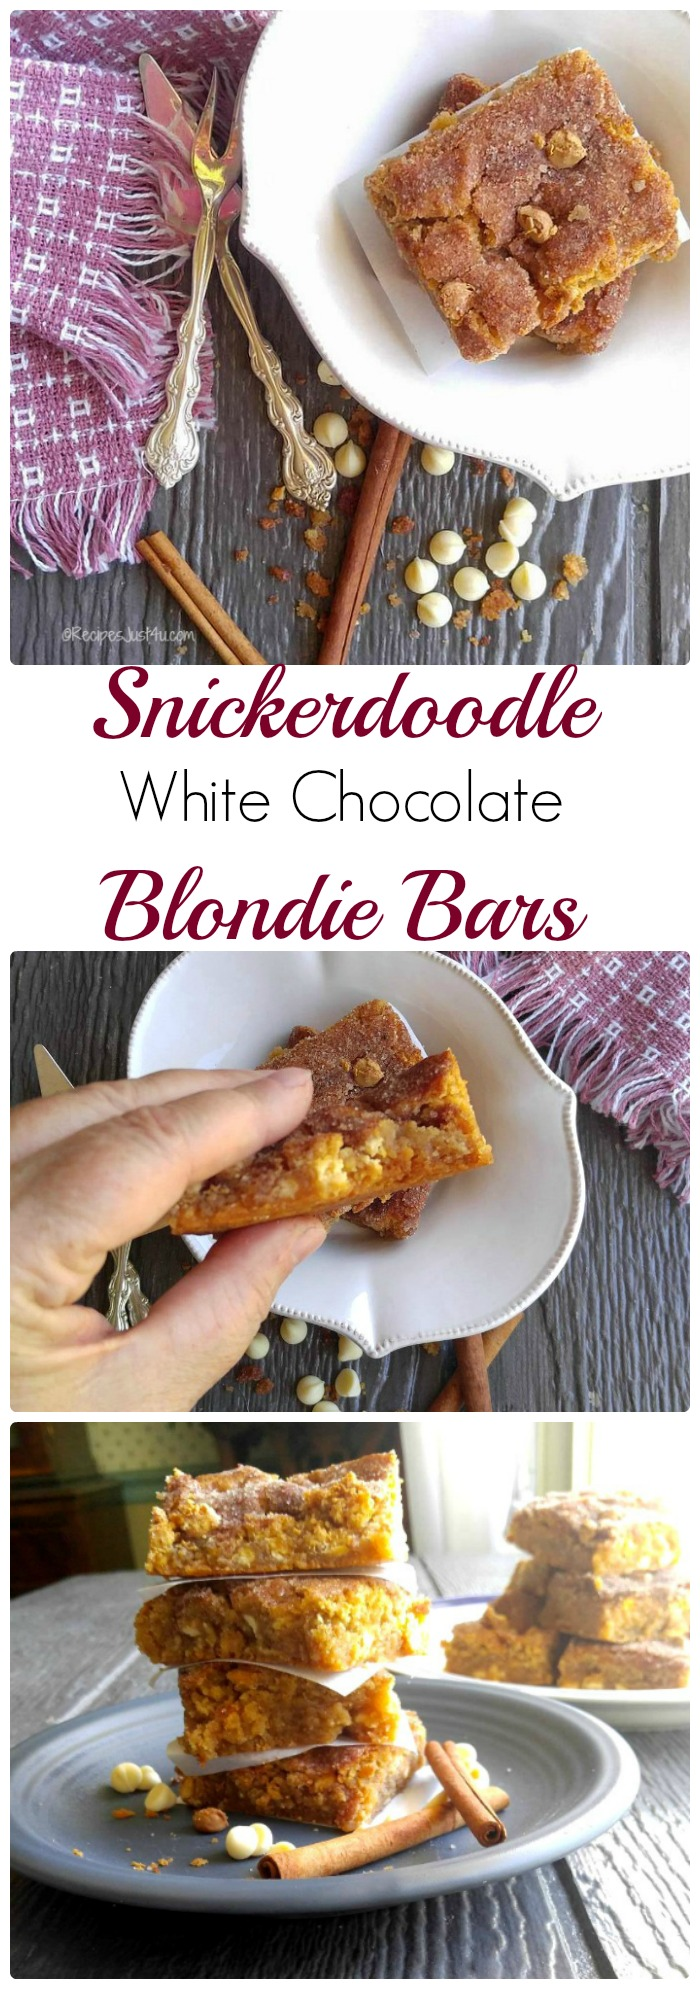 These Snickerdoodle white chocolate blondie bars have the taste of the traditional cookie but the chewy texture of a brownie. They are easy to make and TO DIE FOR! recipesjust4u.com